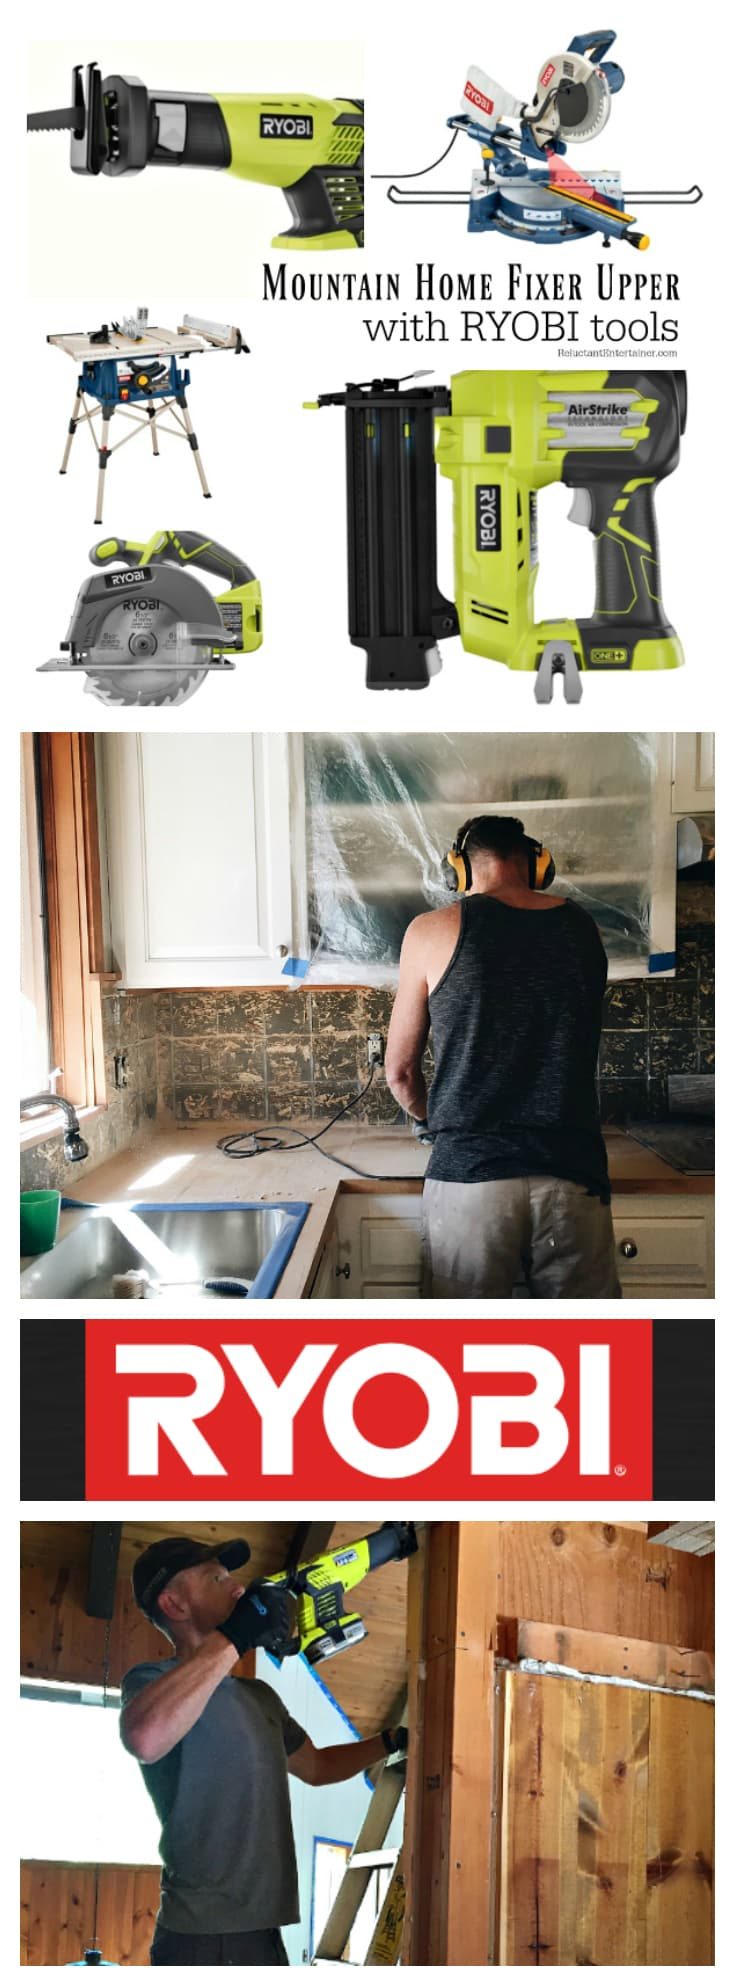 Mountain Home Fixer Upper with Ryobi Tools at ReluctantEntertainer.com